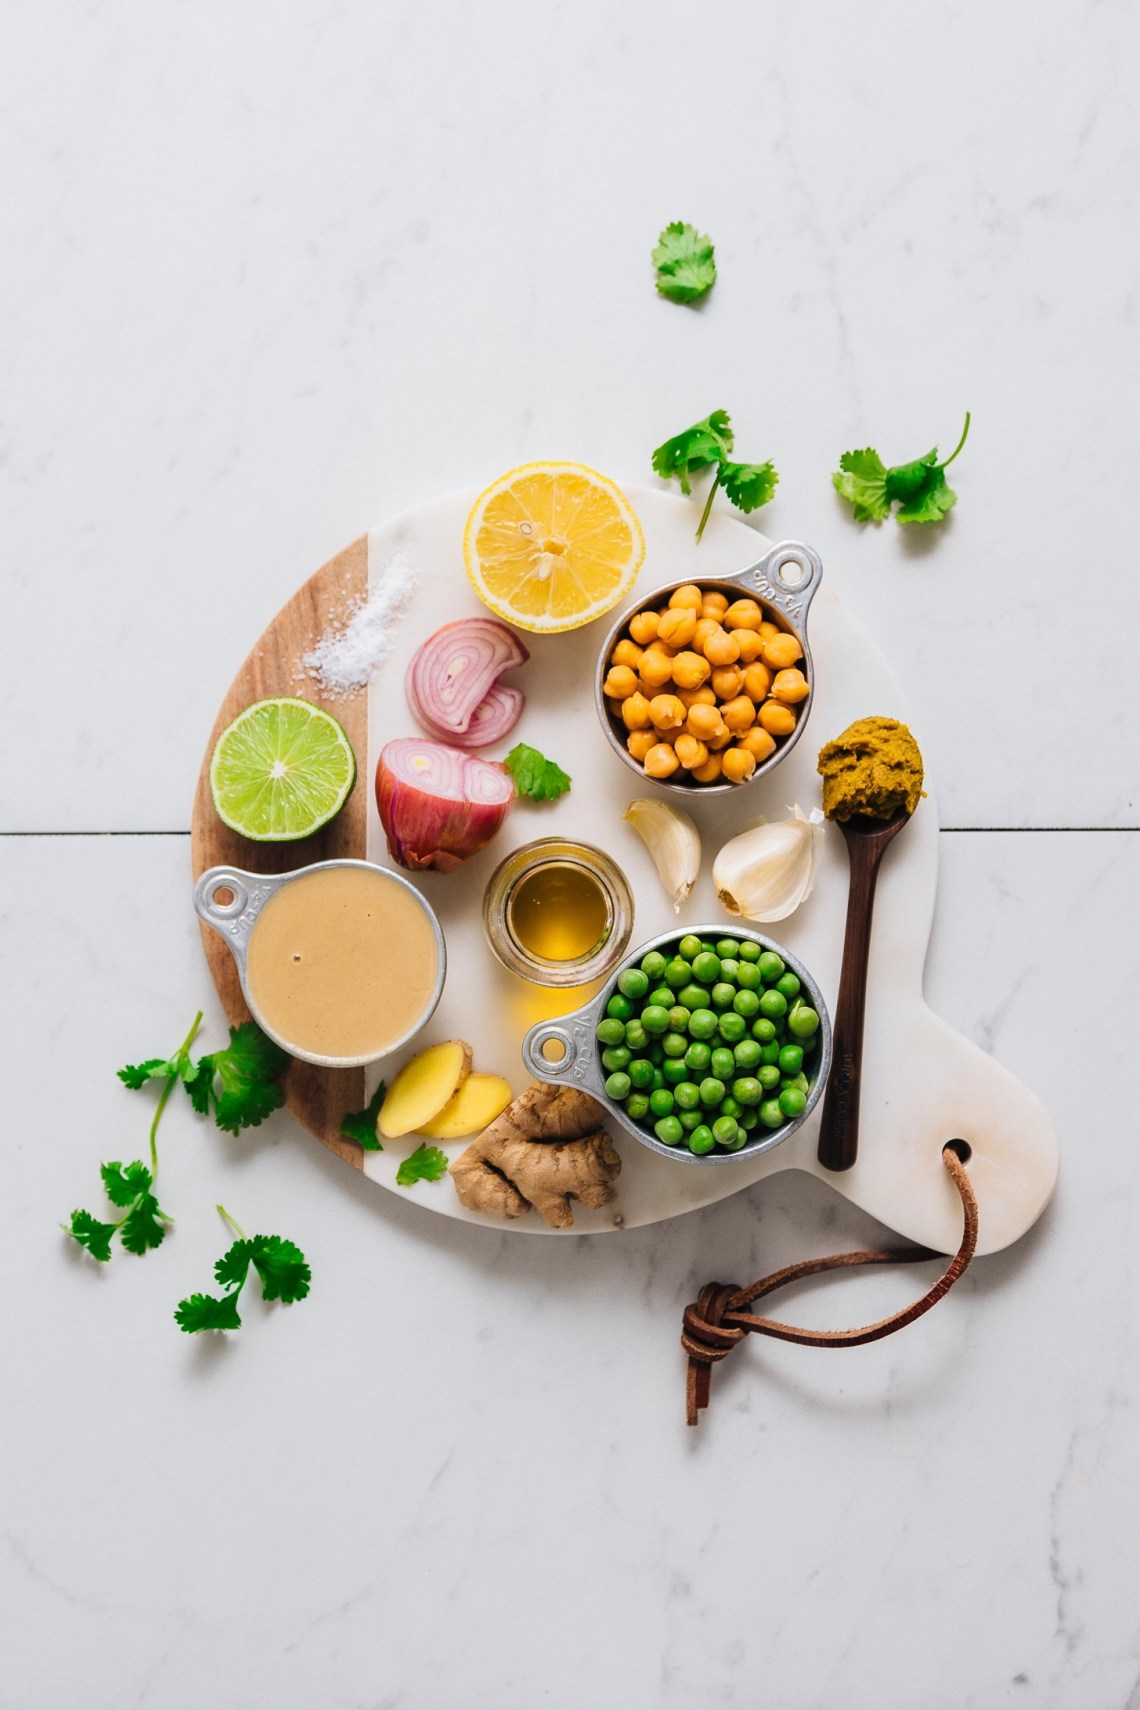 Wood and marble cutting board filled with ingredients for making our flavorful Green Pea Curry Hummus recipe